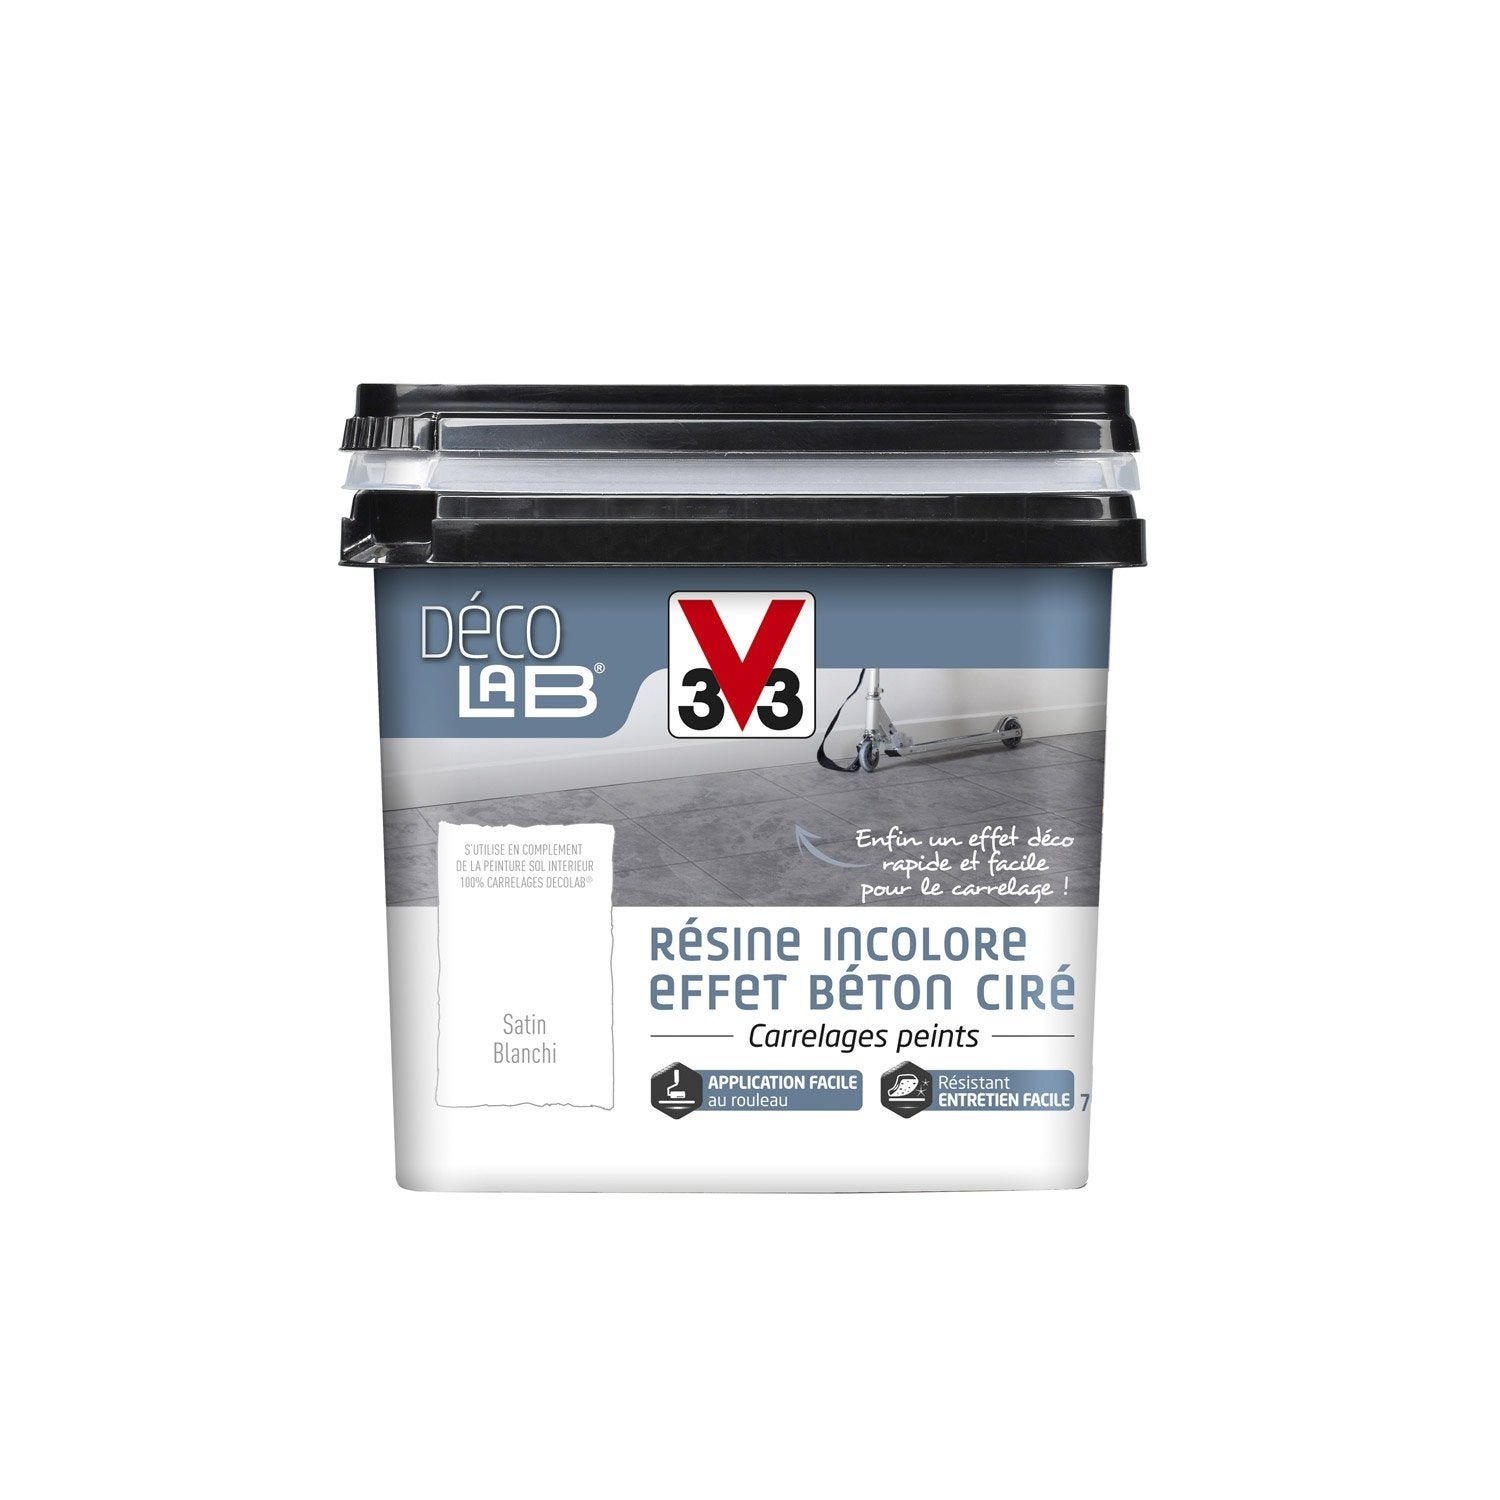 Peinture sol int rieur decolab r sine de finition v33 for Peinture carrelage sol leroy merlin